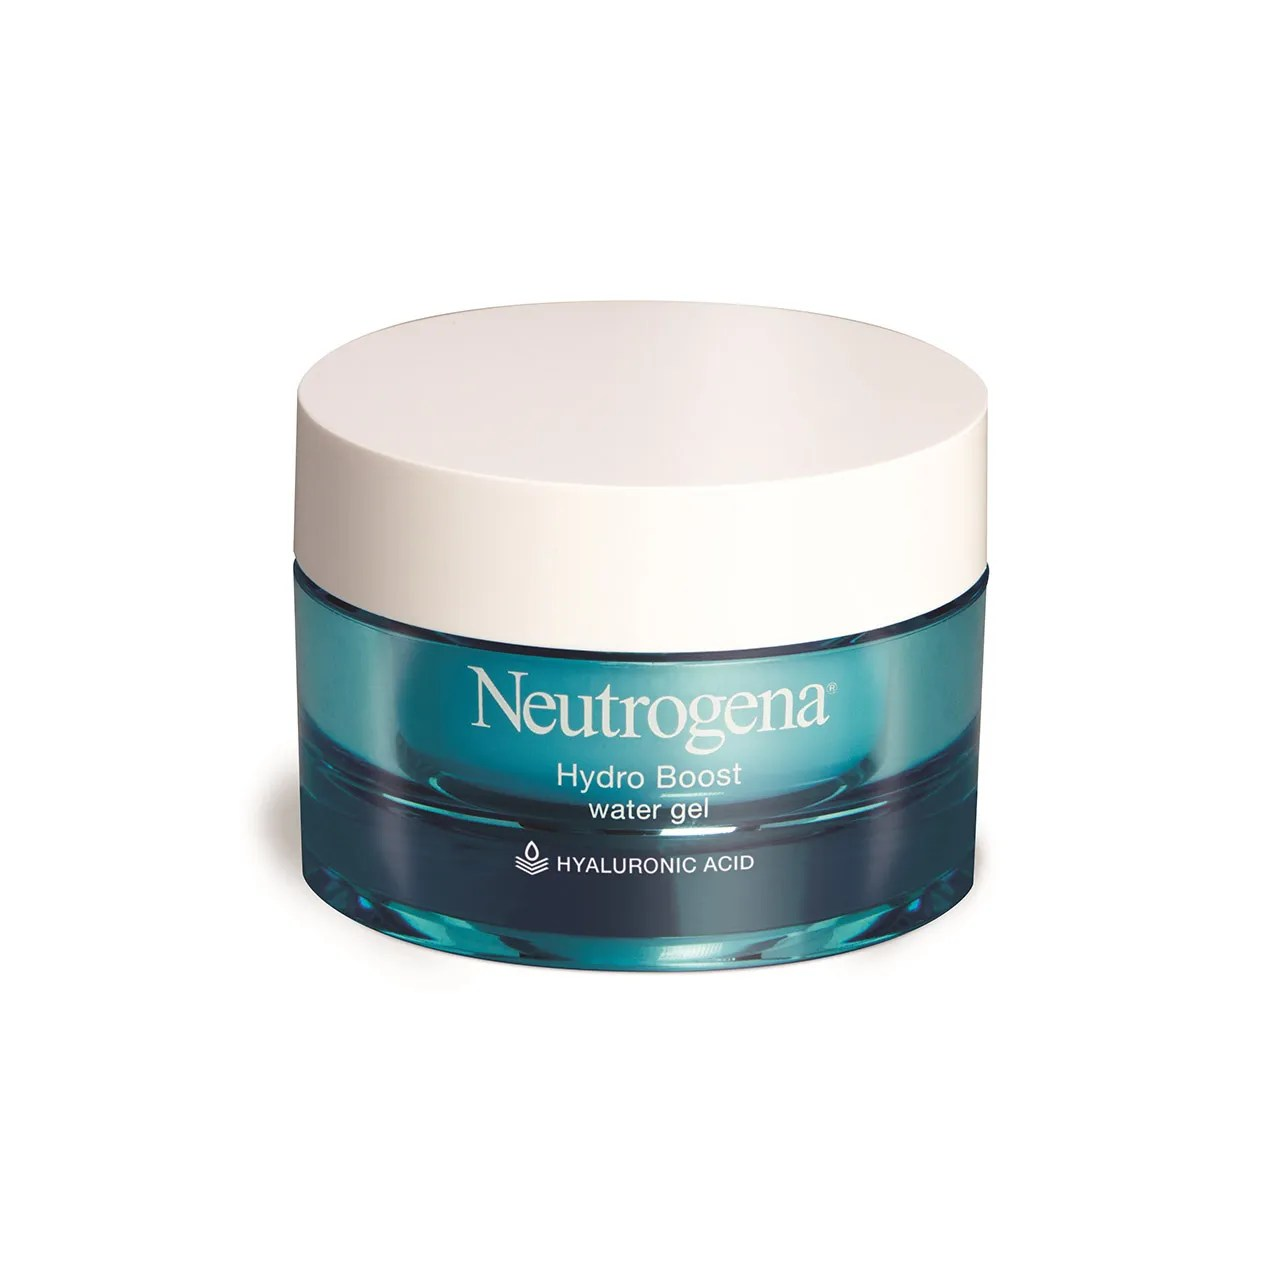 For Facial Gel Neutrogena Hydro Boost Water Gel Review | Allure